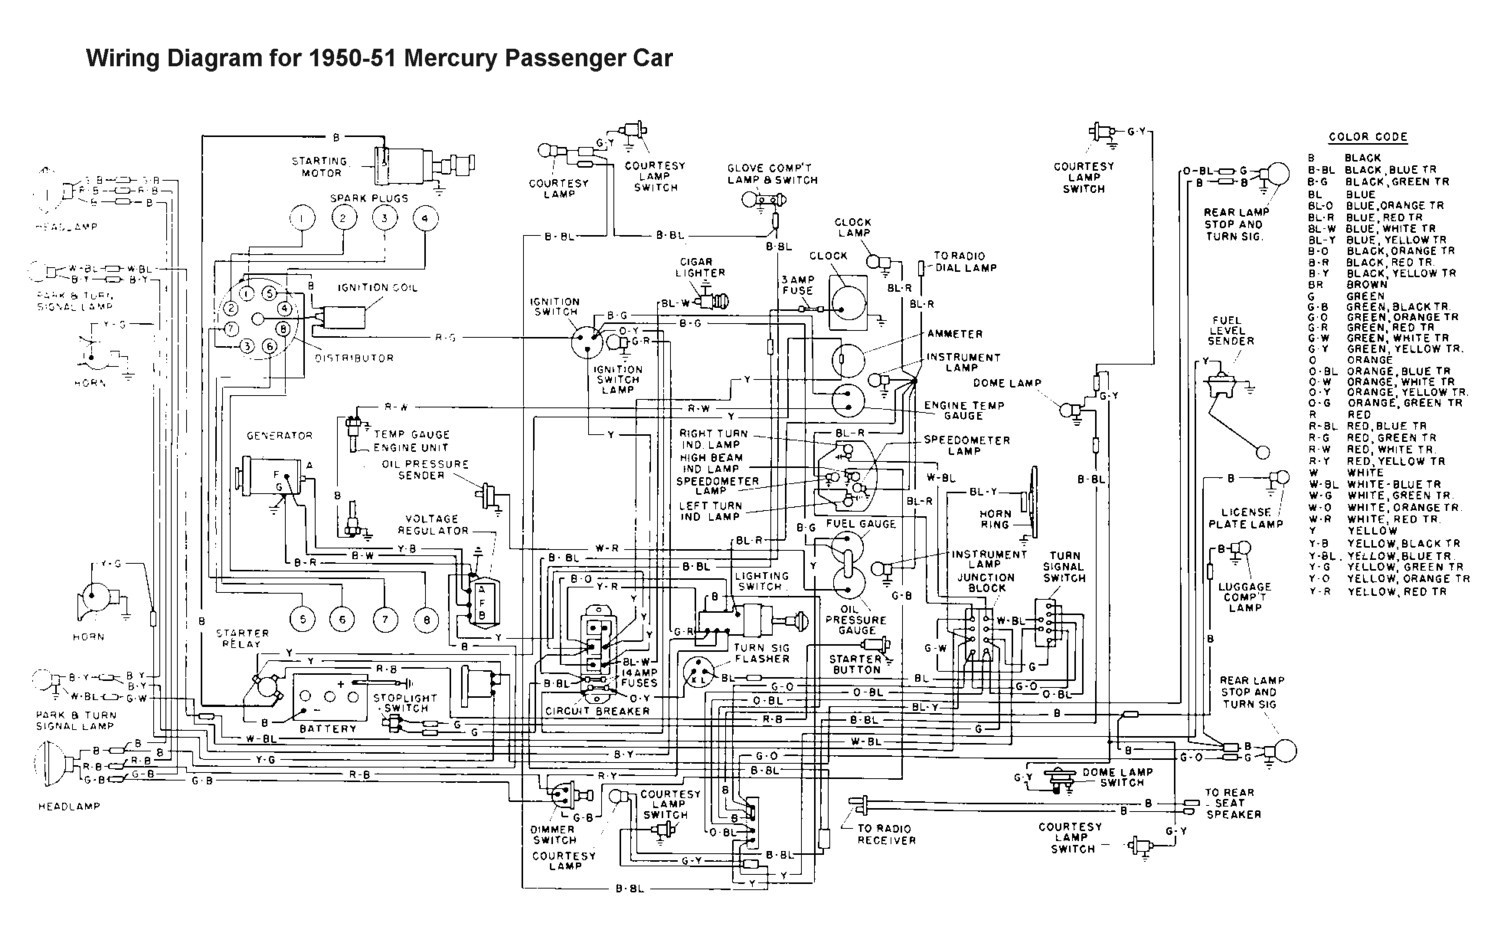 Flathead electrical wiring diagrams wiring for 1950 51 mercury car cheapraybanclubmaster